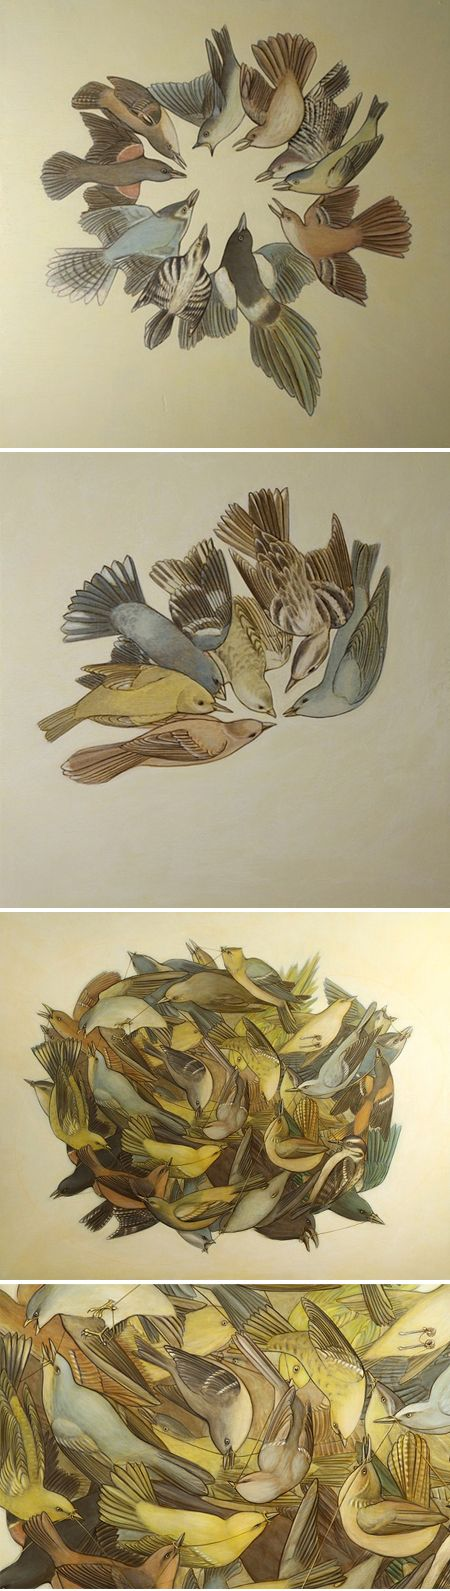 """Swarm"" birds on wood panels by San Francisco artist Alison Kendall Swearingen, a Trained marine biologist and science illustrator."